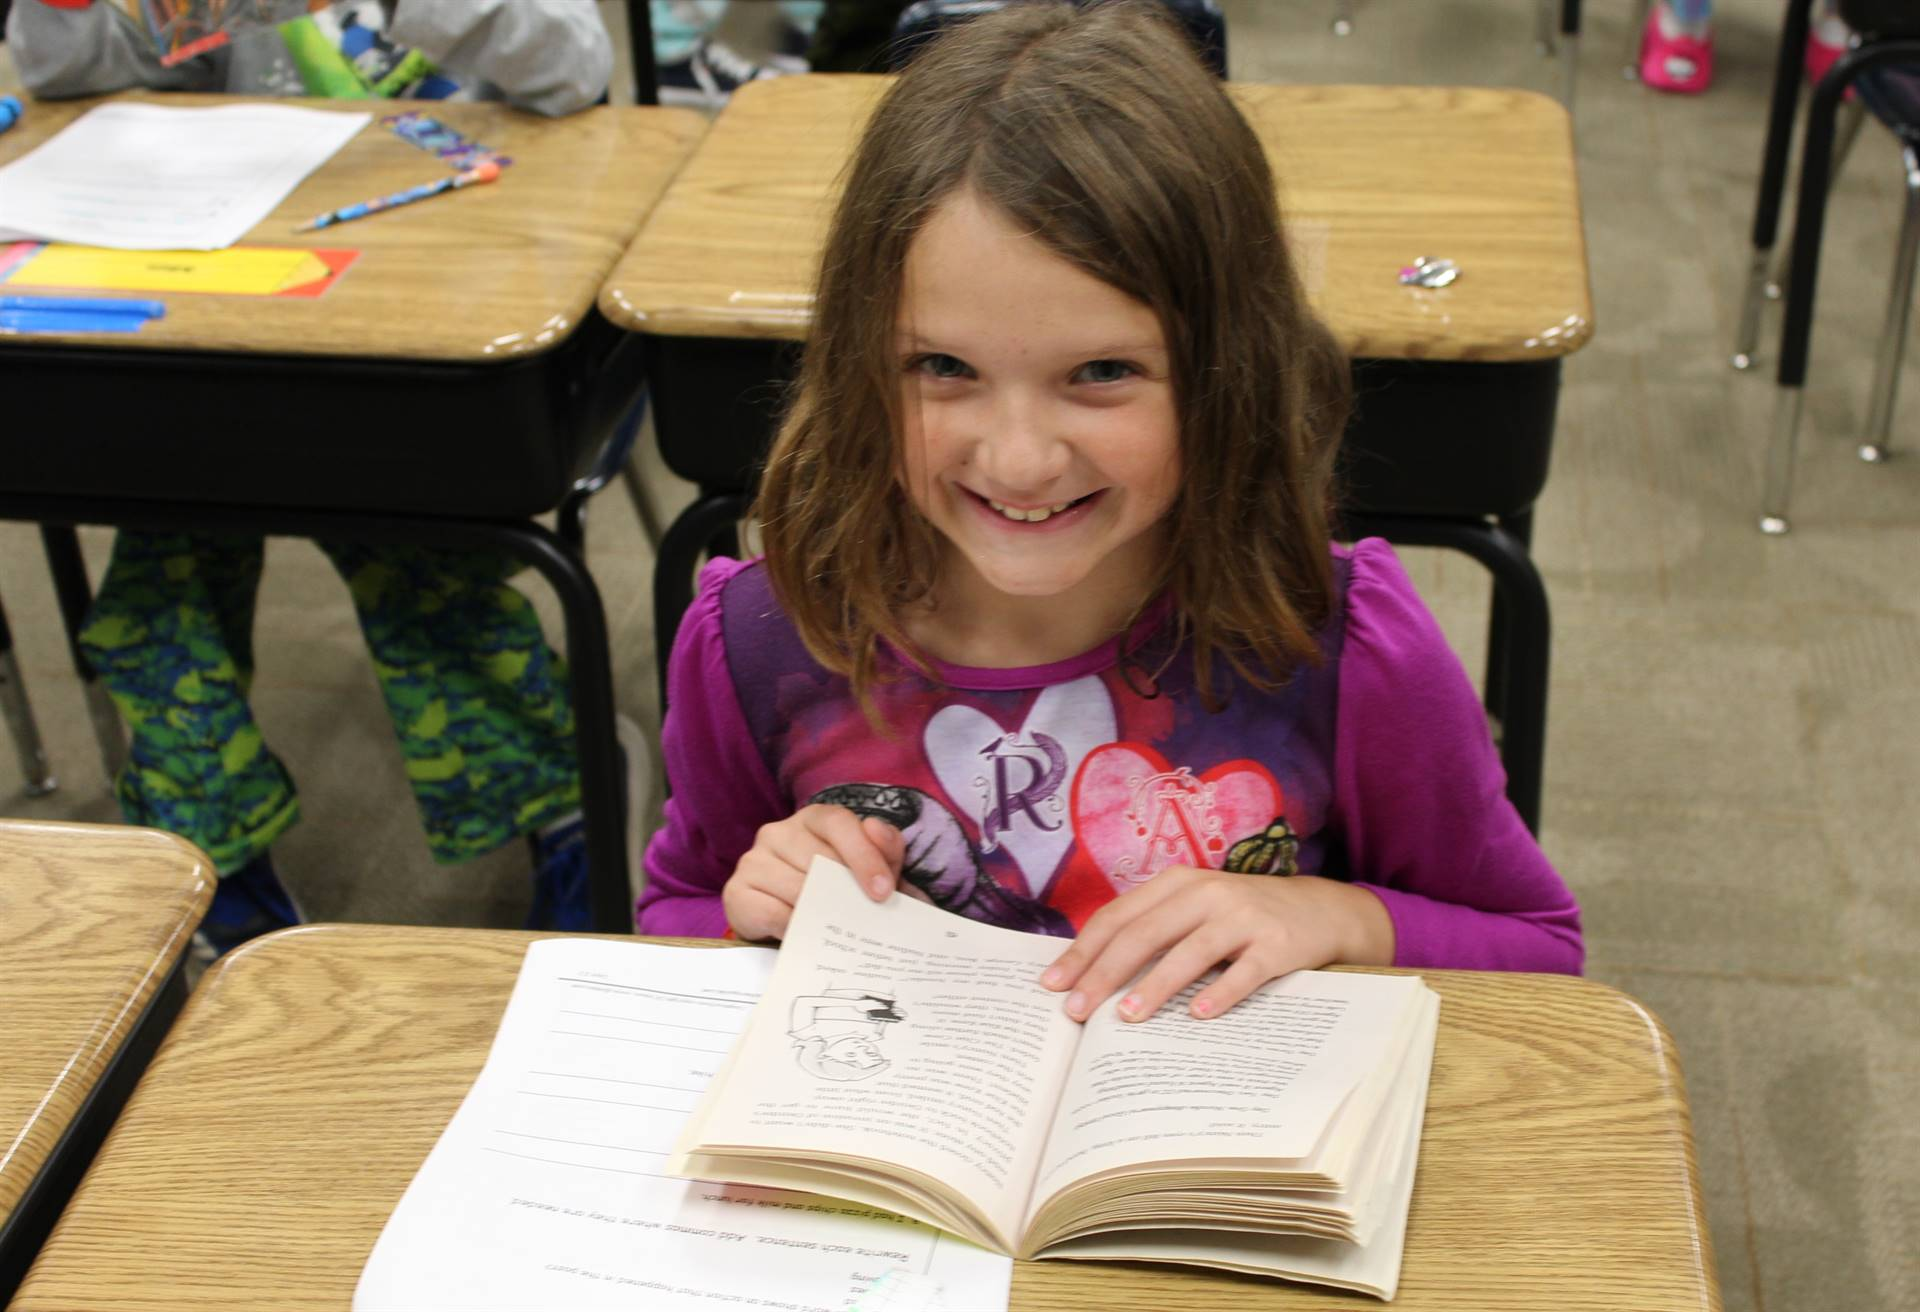 Second graders enjoy reading chapter books